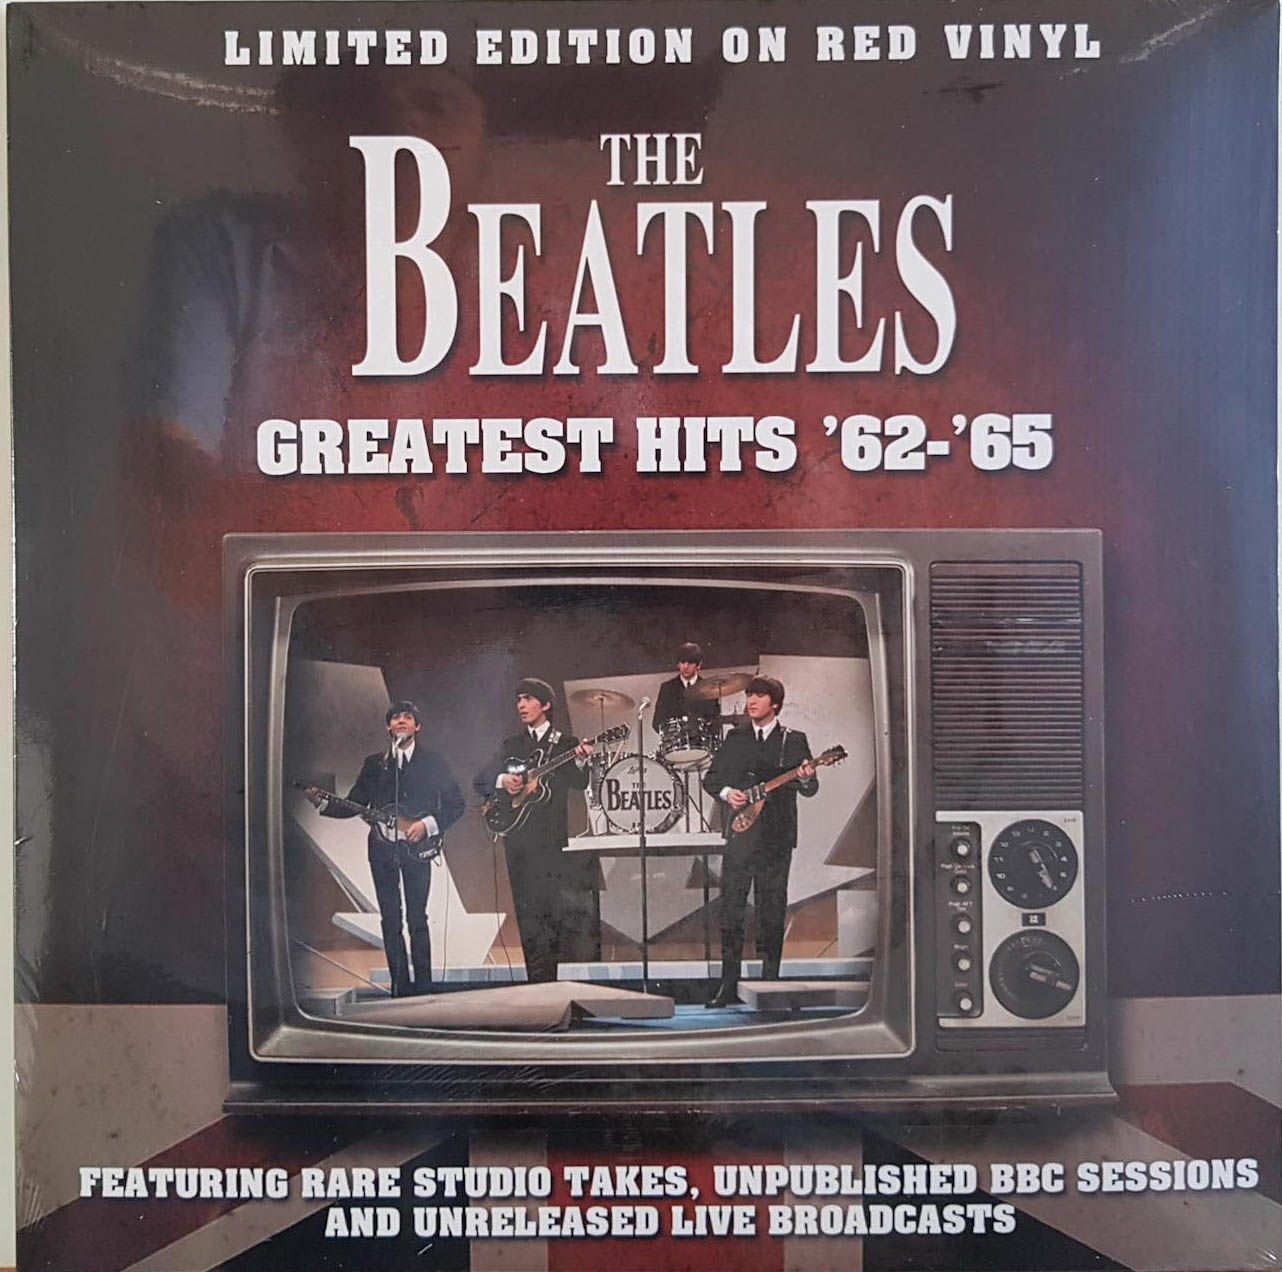 Lp Vinil The Beatles Greatest Hits 1962-65